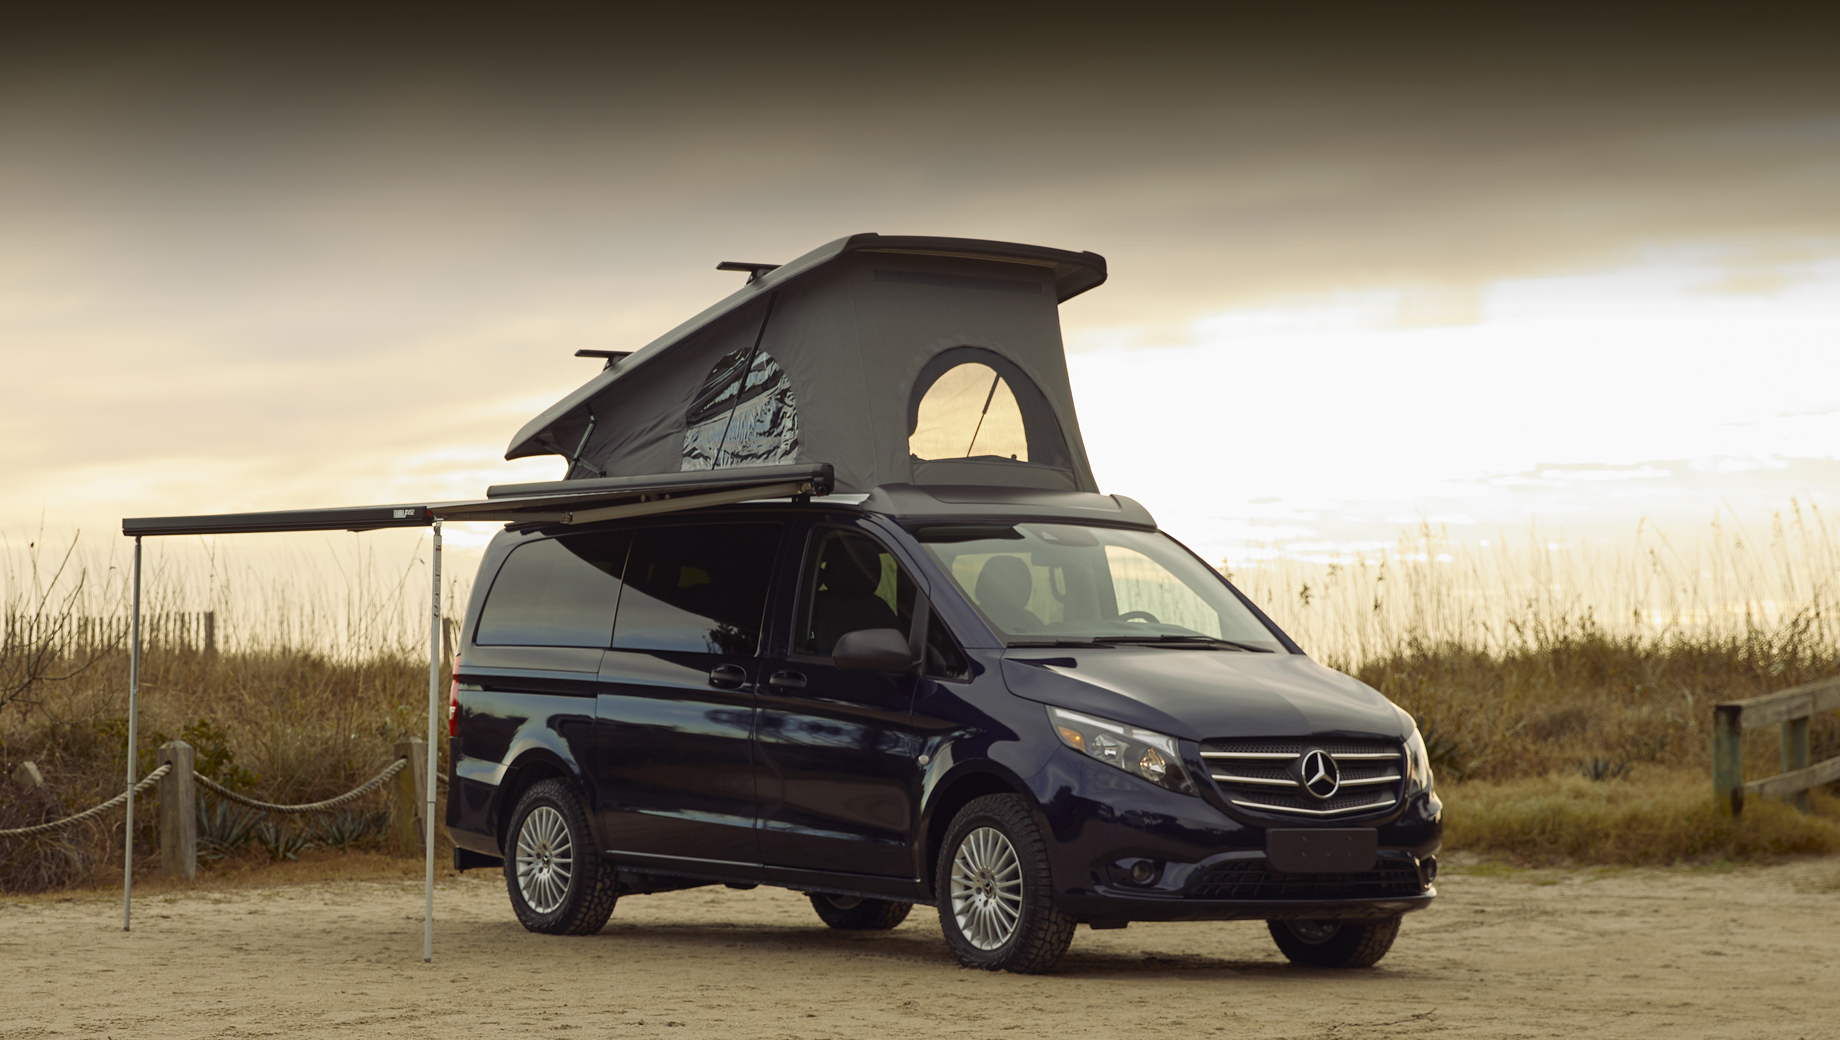 Mercedes-Benz is selling its Vito minivan model as the Metris in the United States, offering it in a number of passenger and commercial versions. Starting this week, a campervan version joins the list at a $26,400 premium over the entry spec.